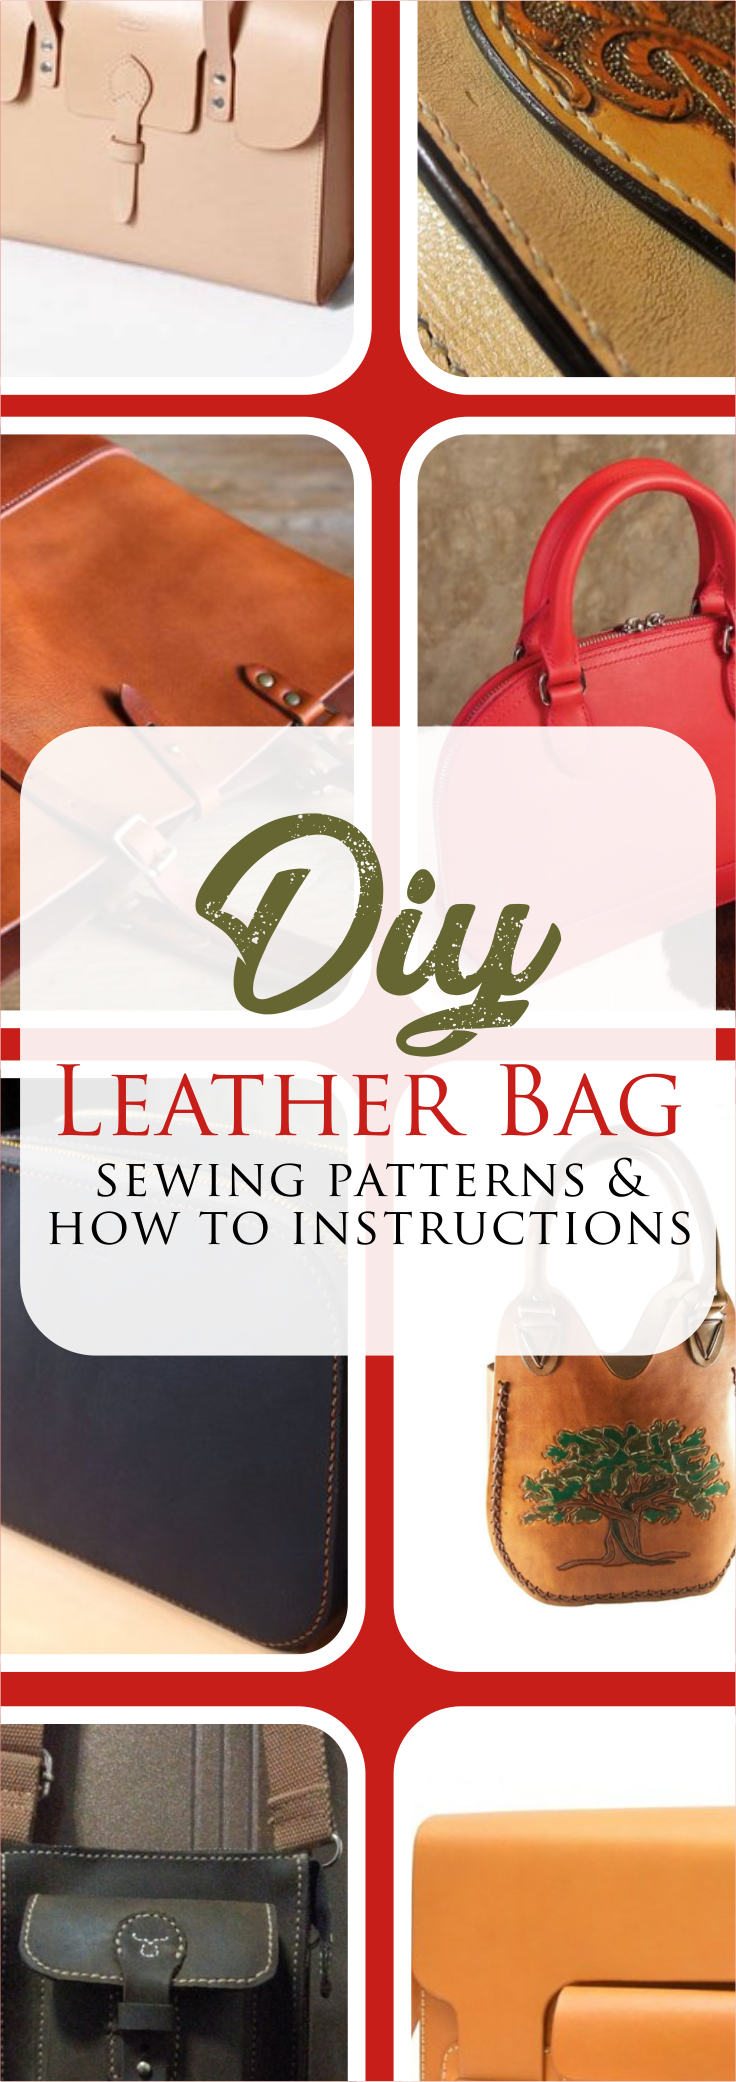 How to Make a Leather Bag #bagpatterns